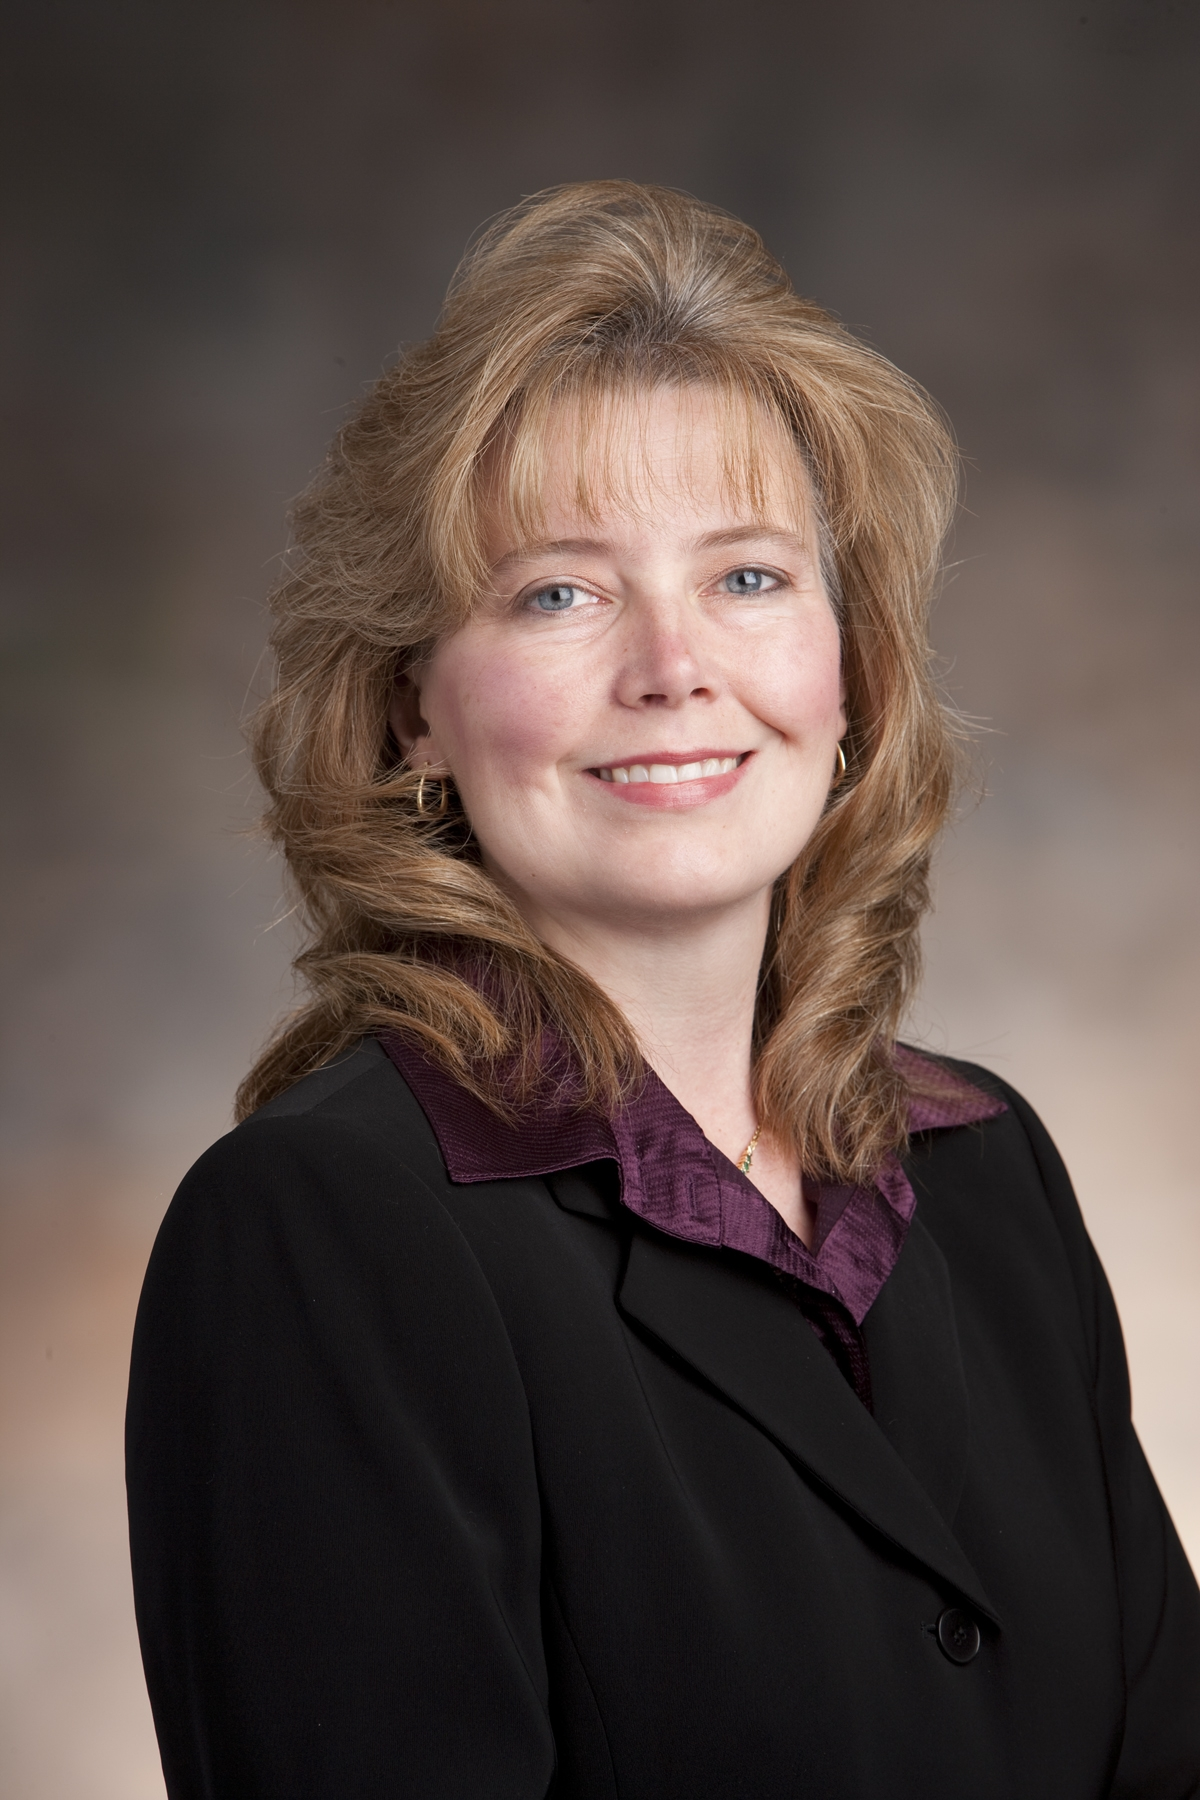 Kimberly A. Johnston, M.D.